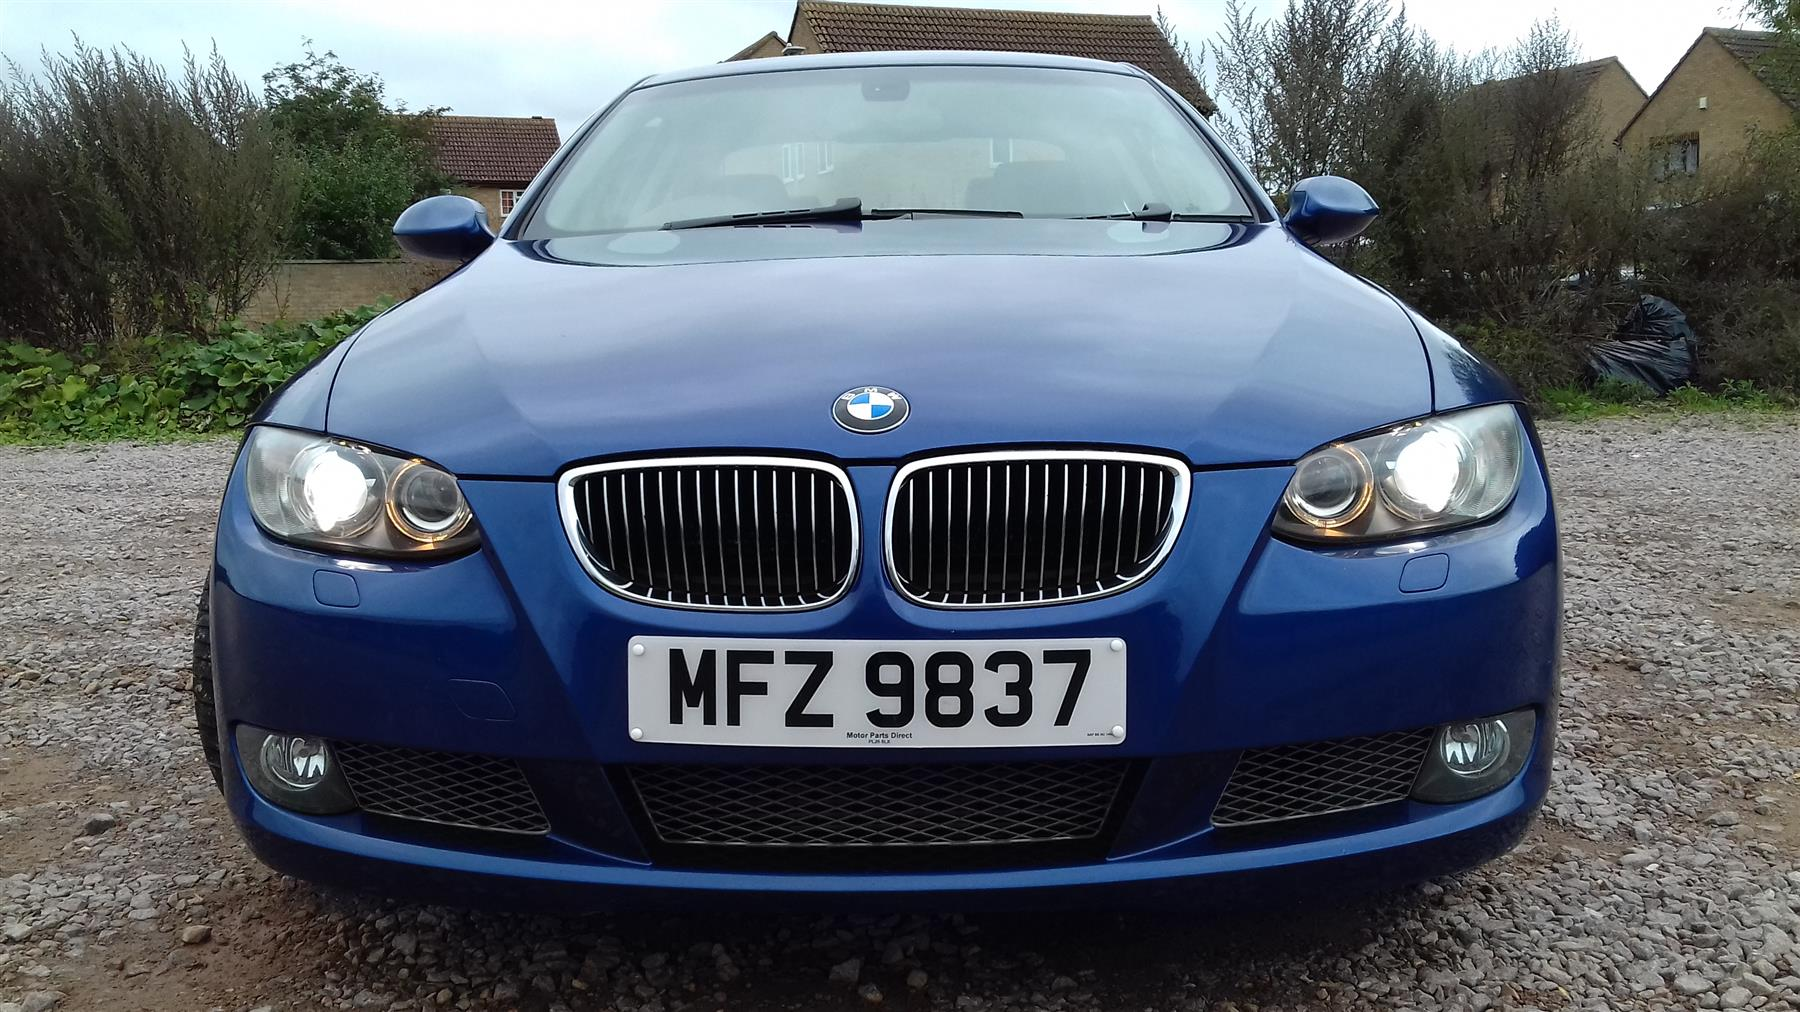 BMW 3 series 335d 2007 photo - 1